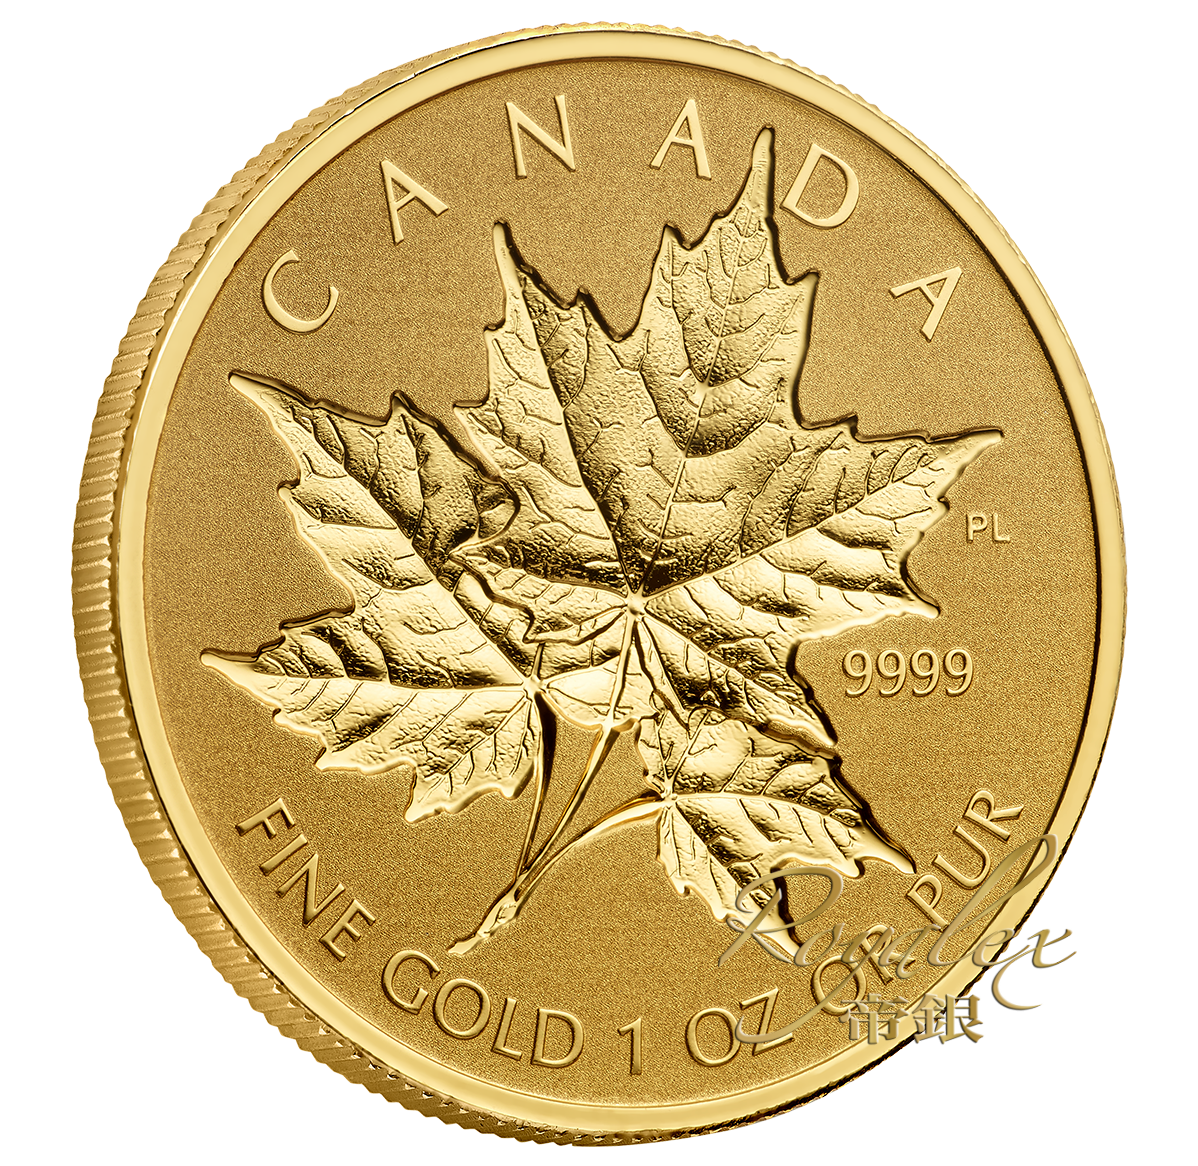 Canada 2014 Maple Proof Gold 4 Coin Set | RoyalexSilver